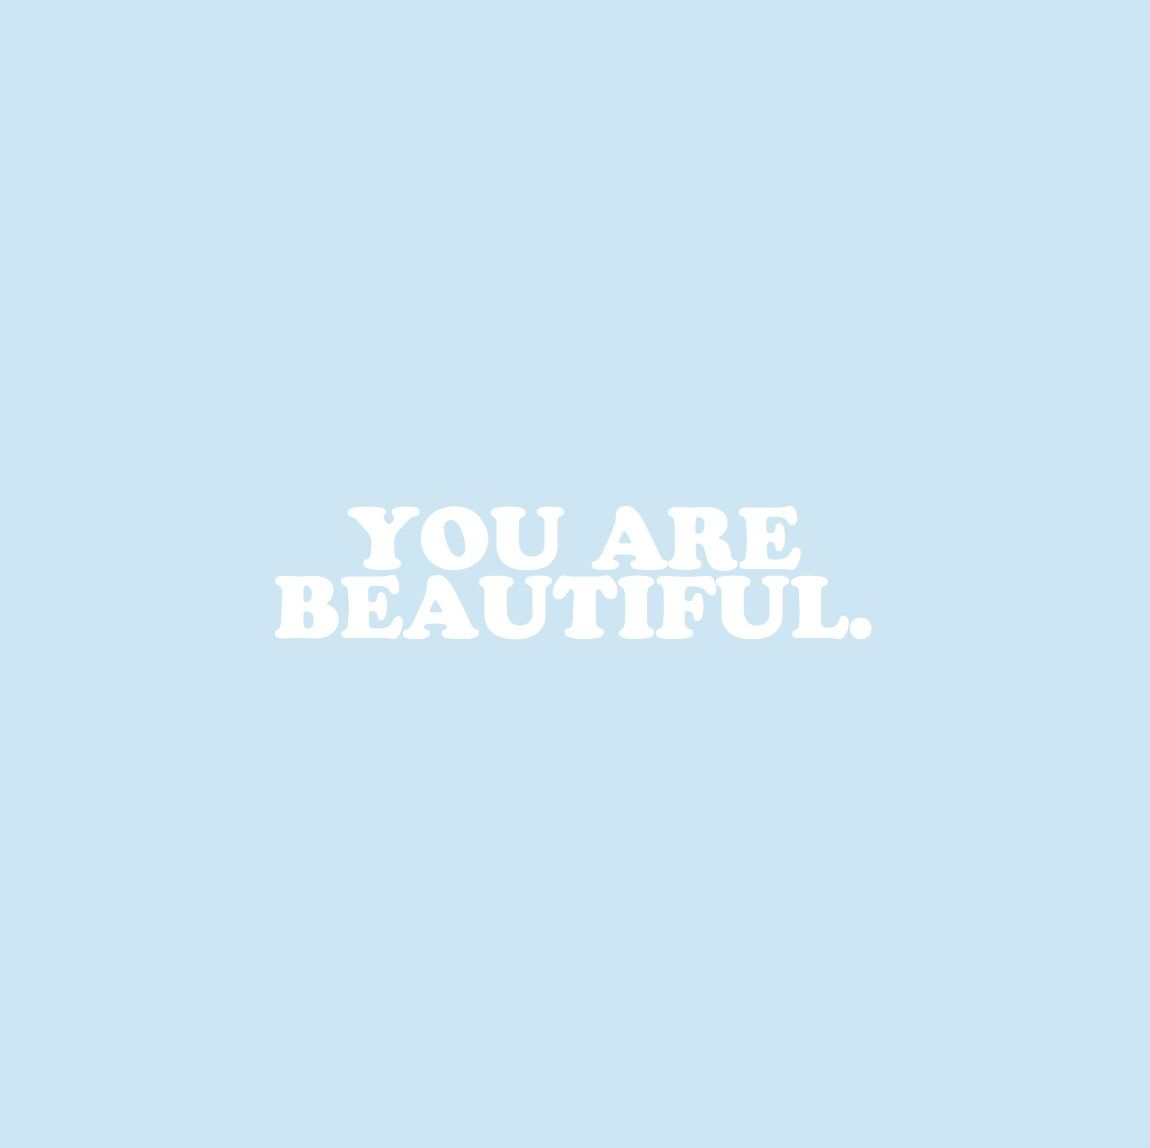 Blue Aesthetic Quotes Wallpapers Top Free Blue Aesthetic